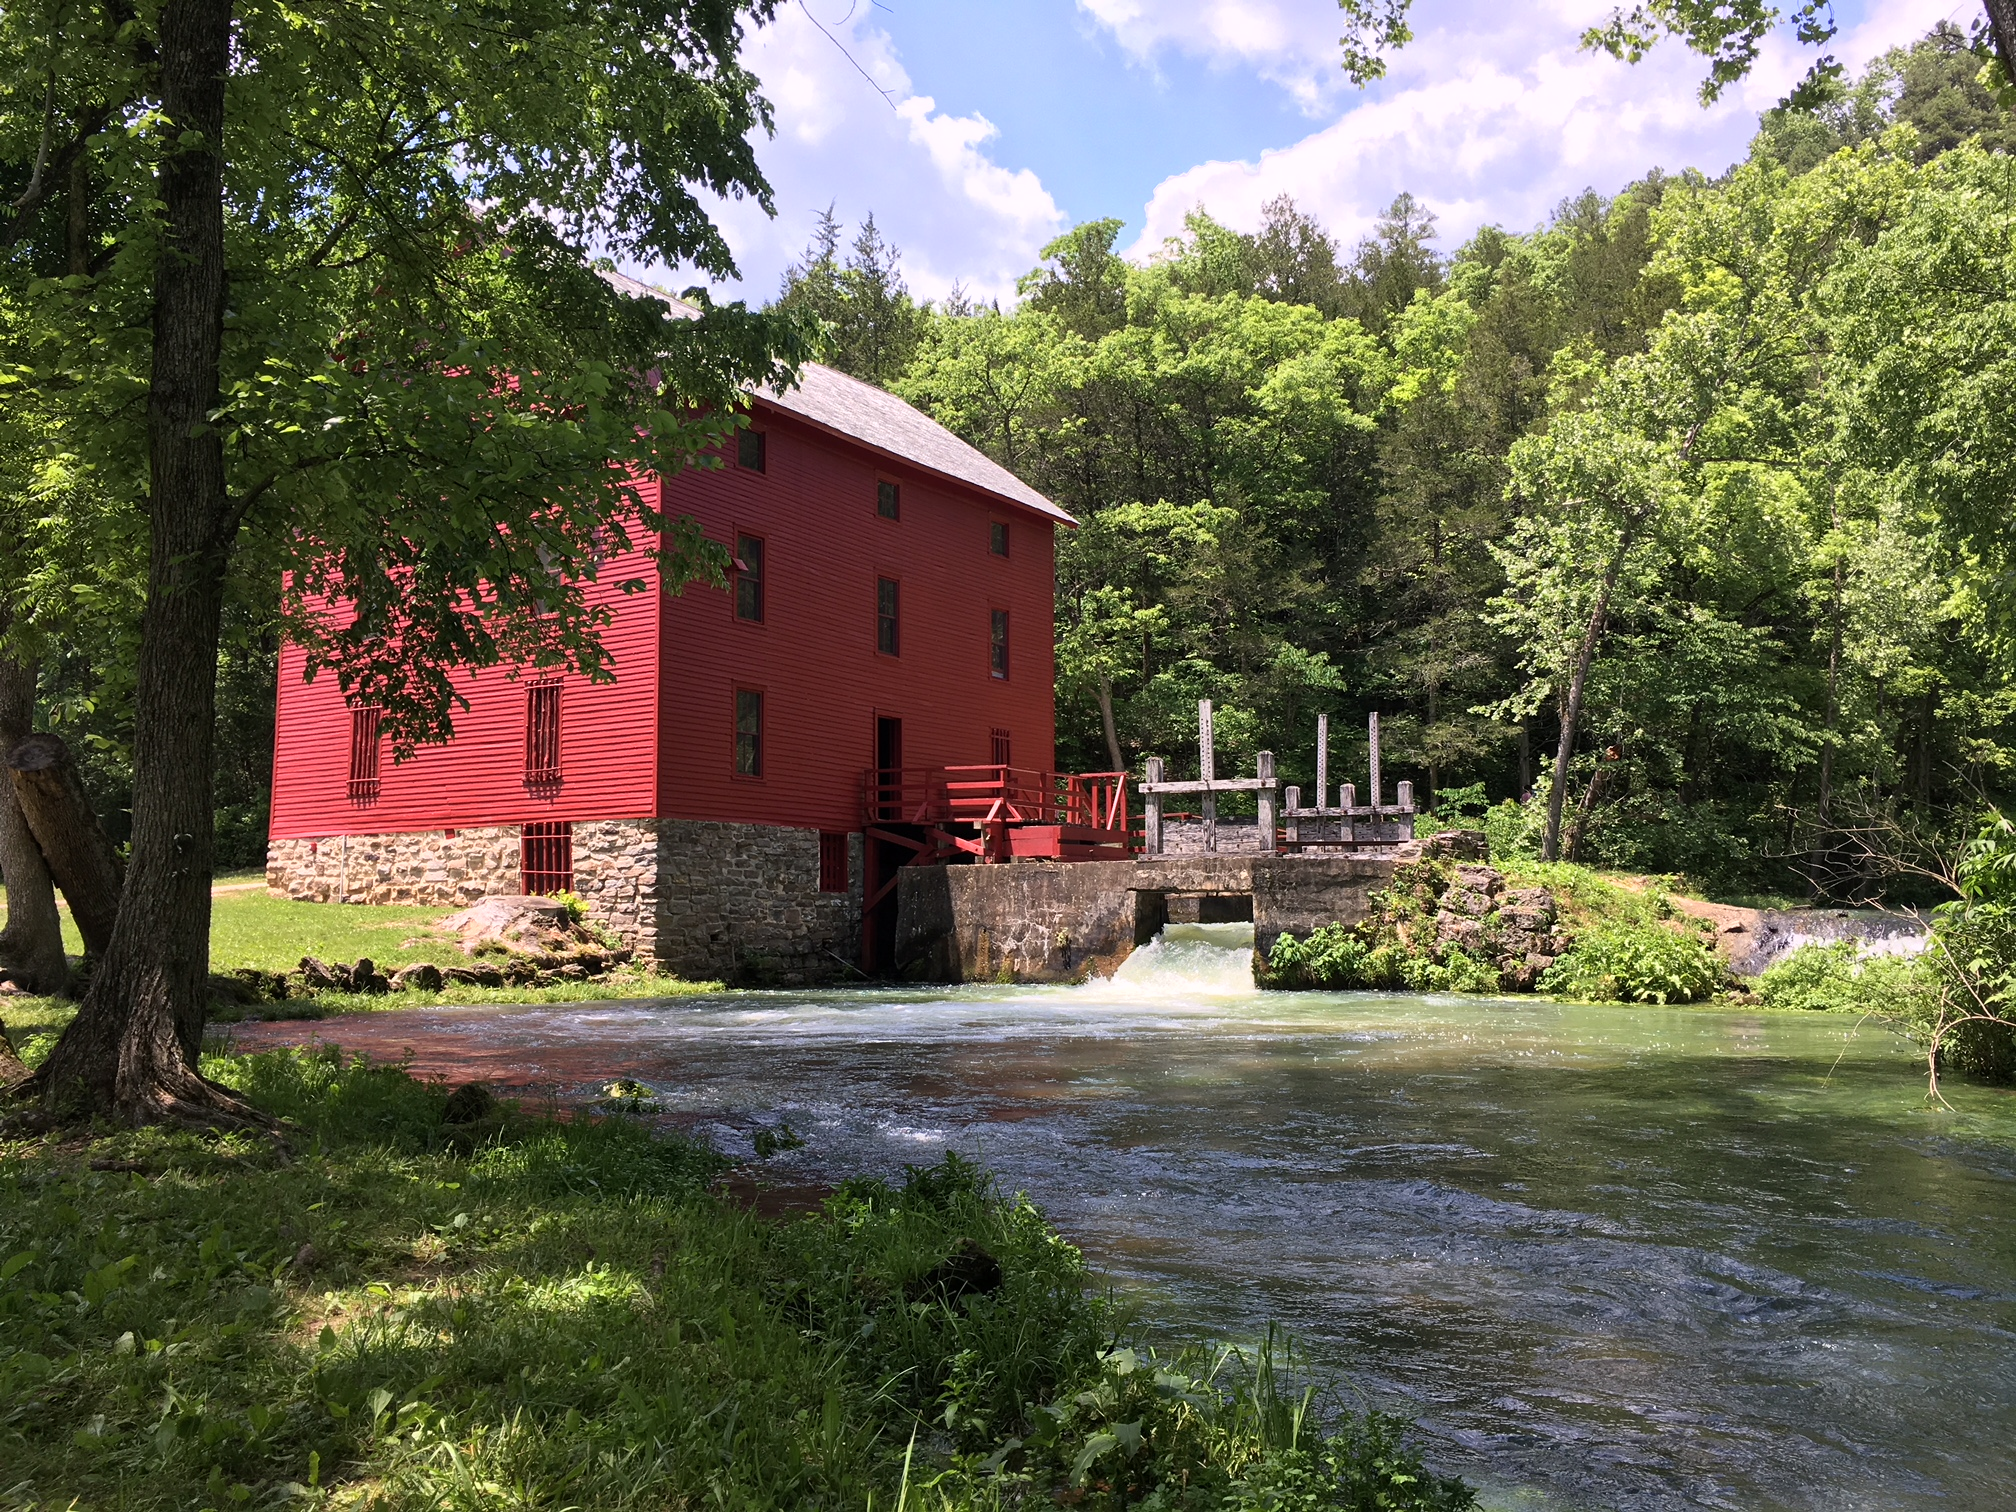 The famous Alley Spring Mill, near Eminence, is one of the most picturesque spots in the Ozarks. Tour this and other historical and geological sites along the ONSR.